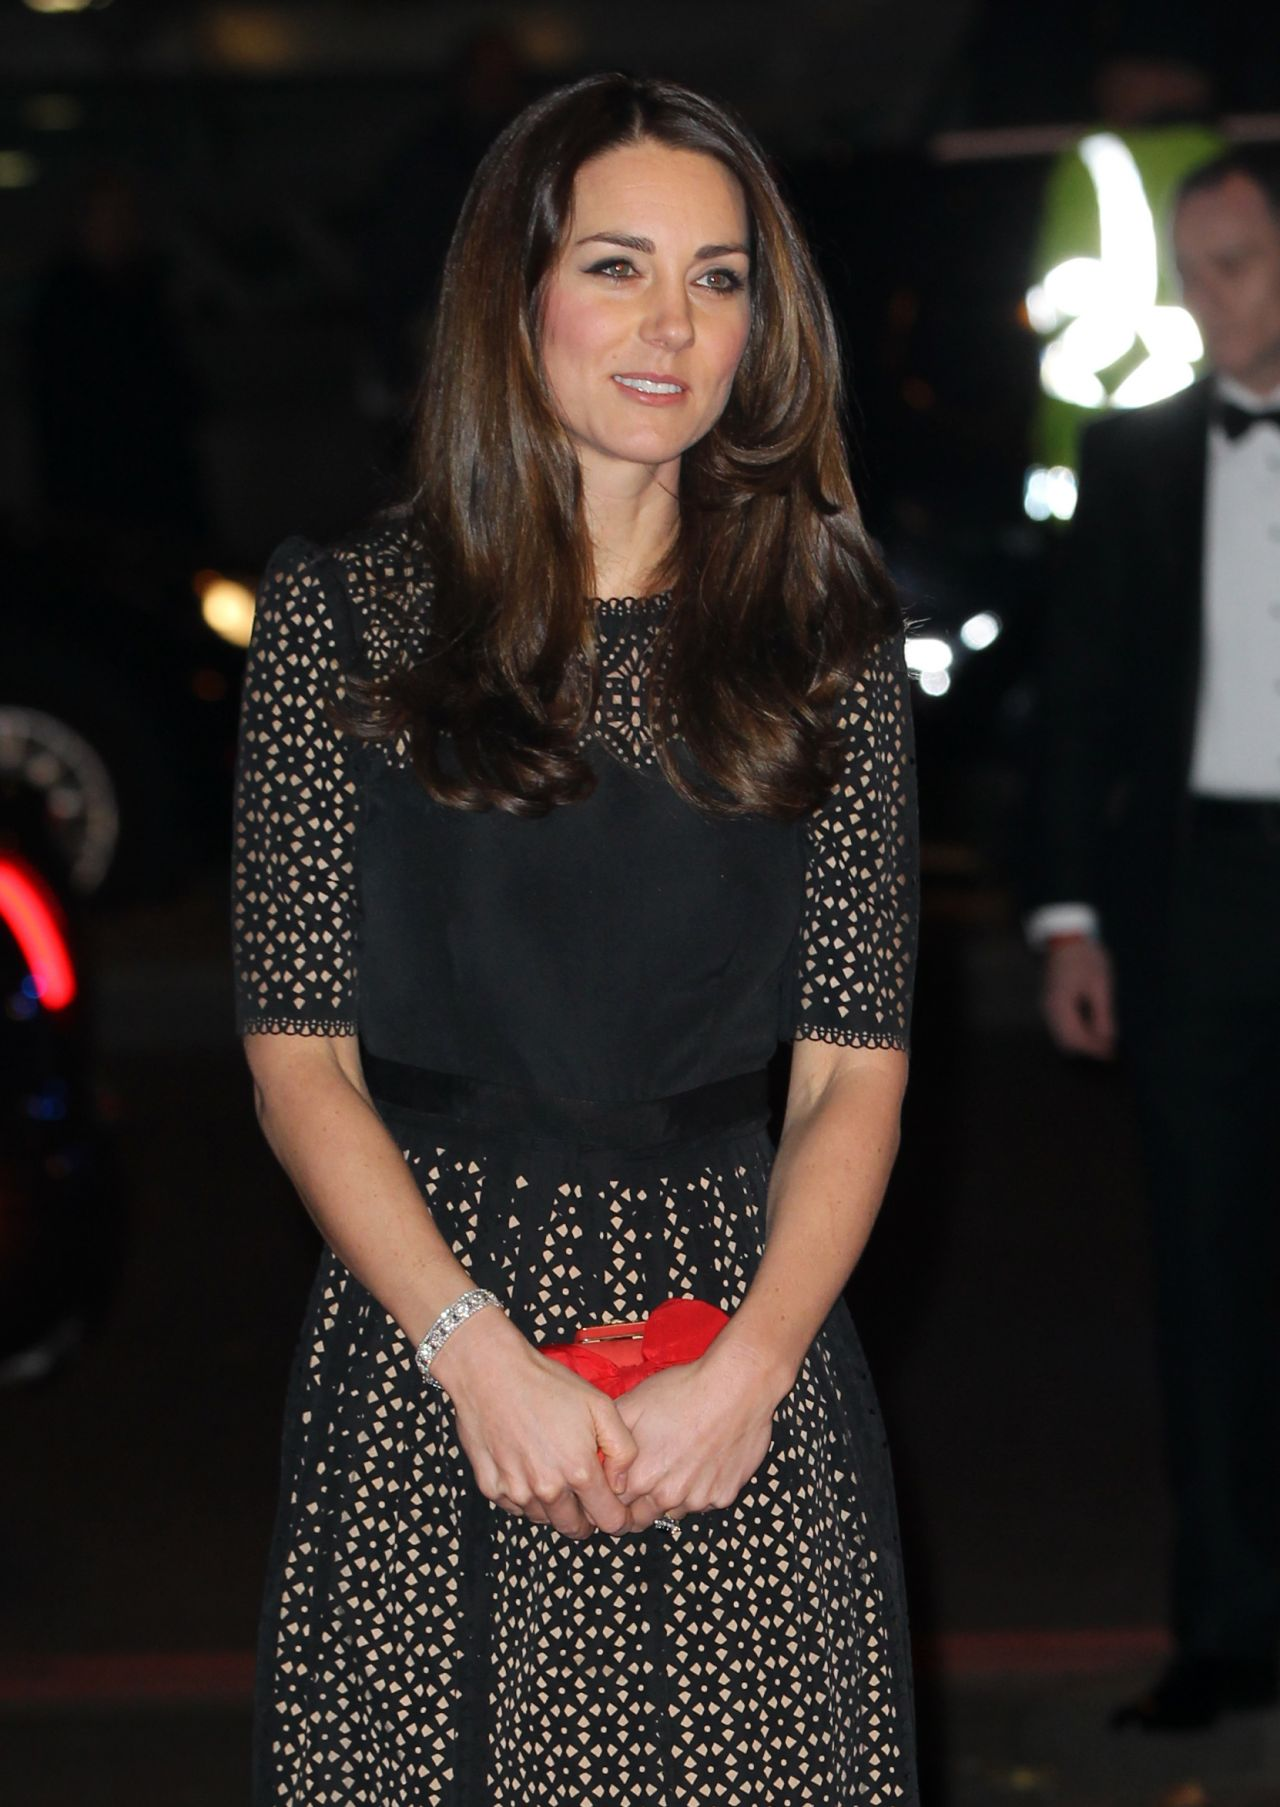 Kate Middleton Attends Annual SportsAid Dinner at Victoria Embankment Gardens in London - November 2013